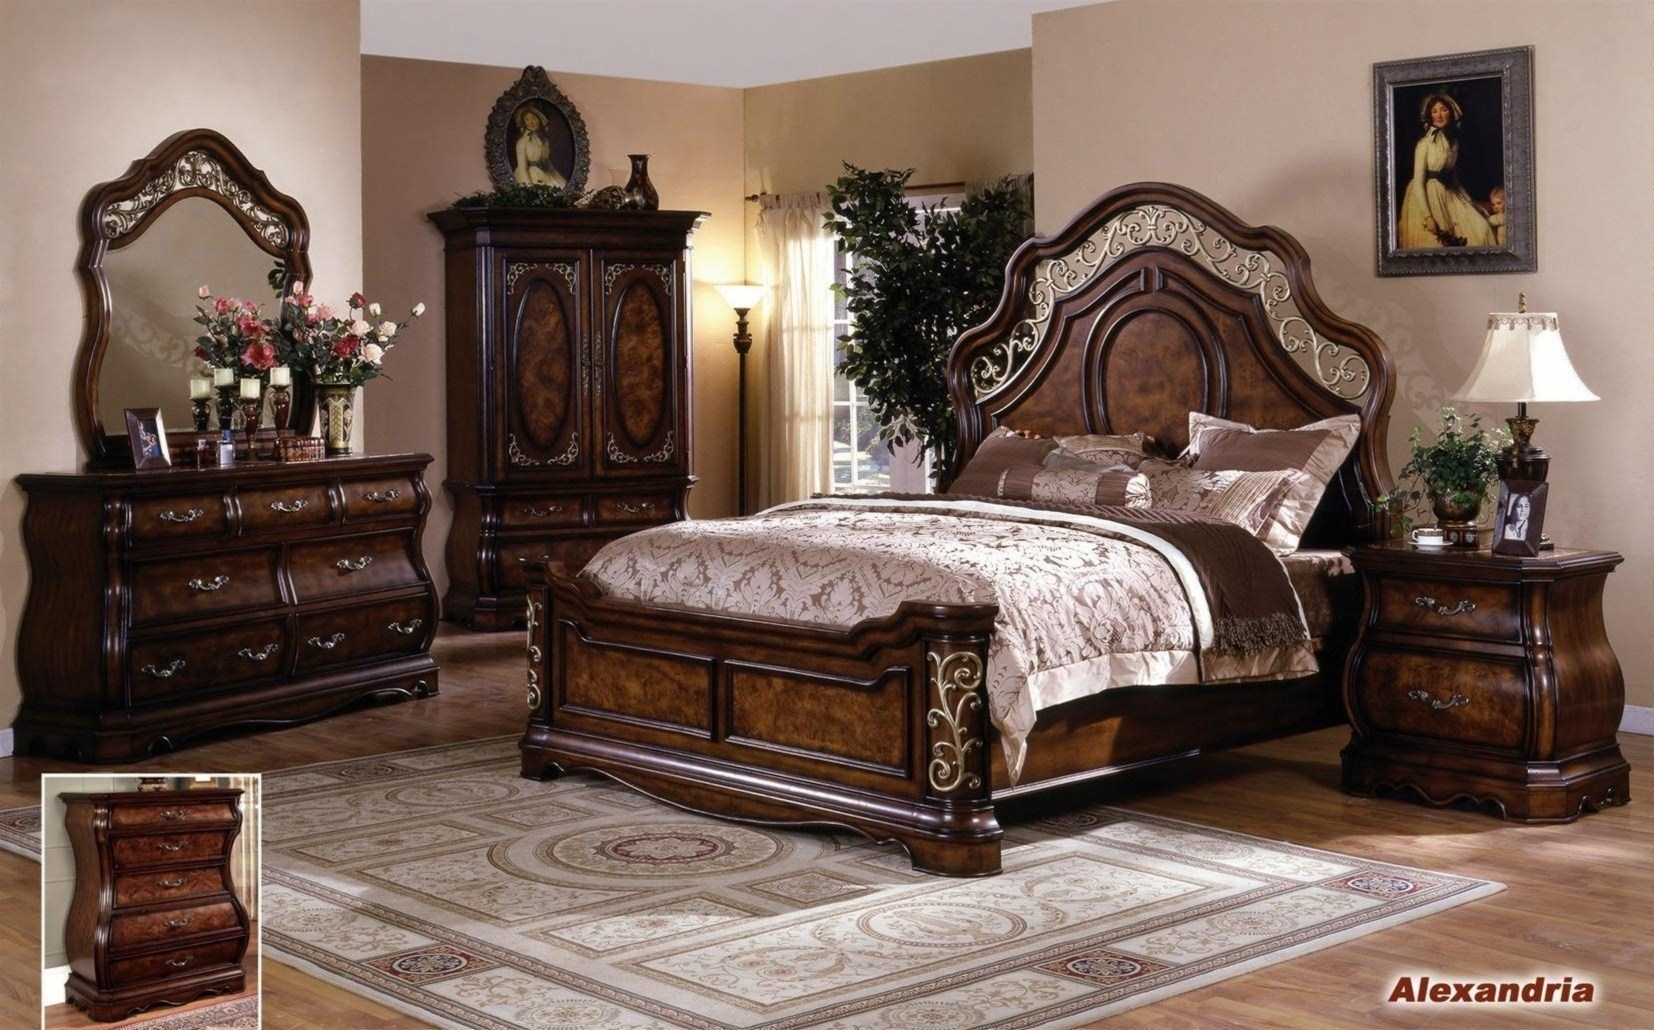 Alexandria Elegant Solid Wood Traditional Bedroom Setempire Furniture Design  Wood Bedroom